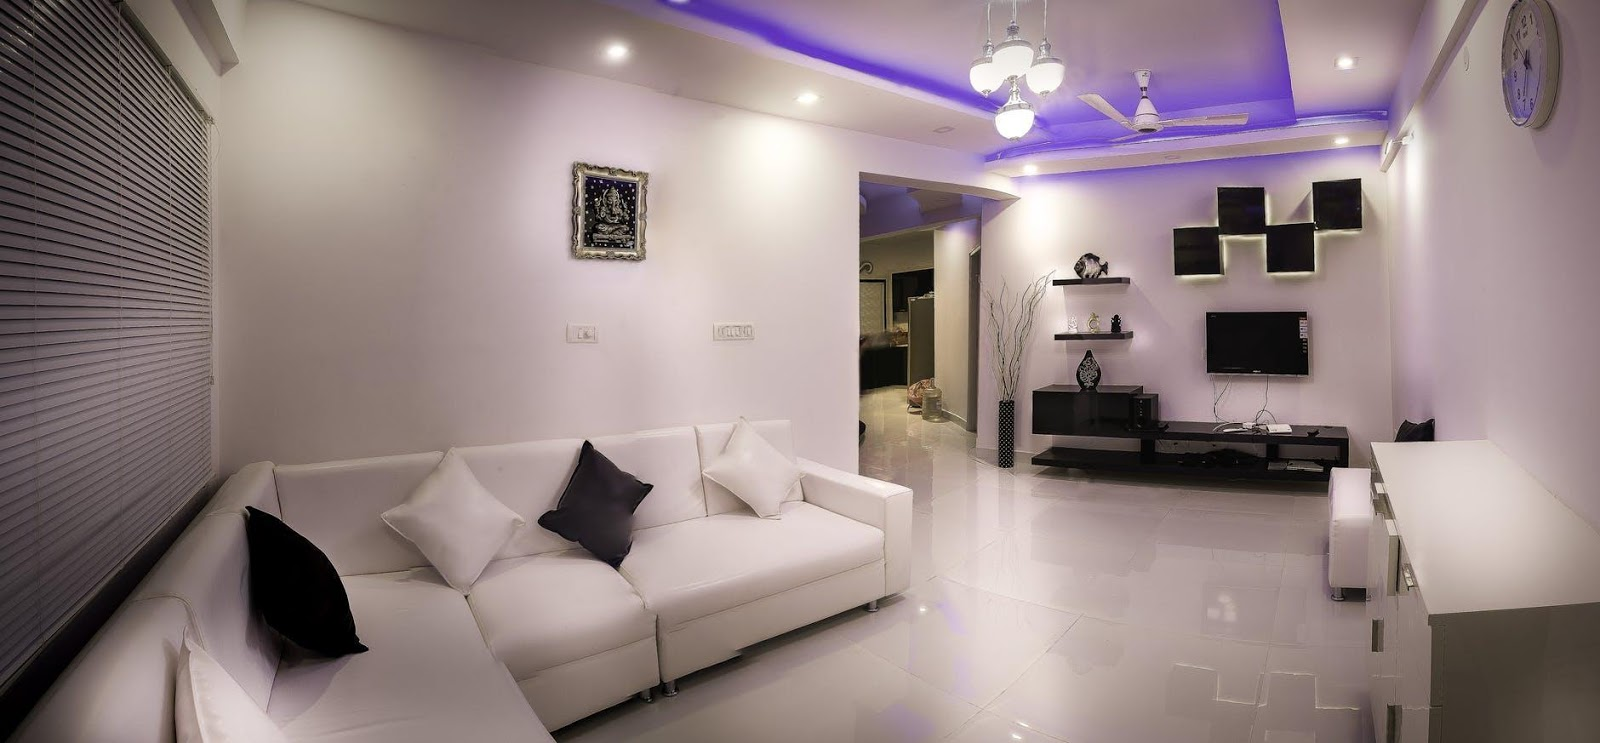 Technological Home Lighting System